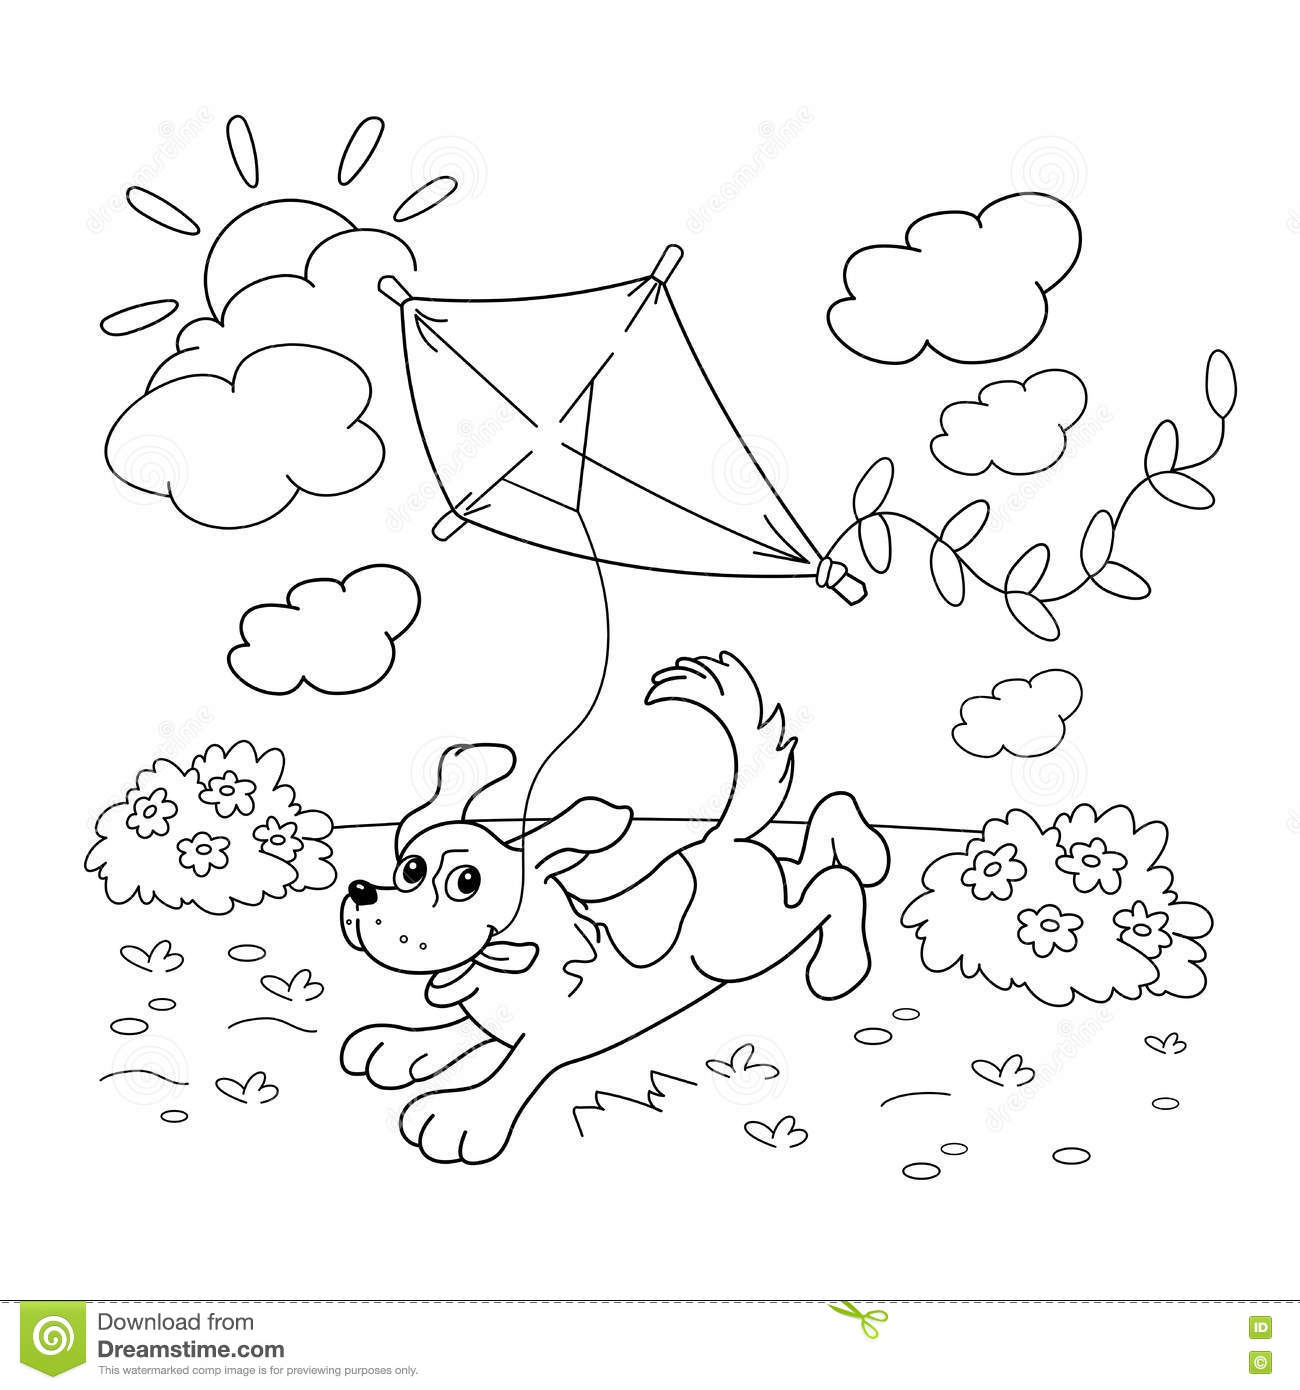 Coloring Page Outline Of Cartoon Dog With A Kite Coloring